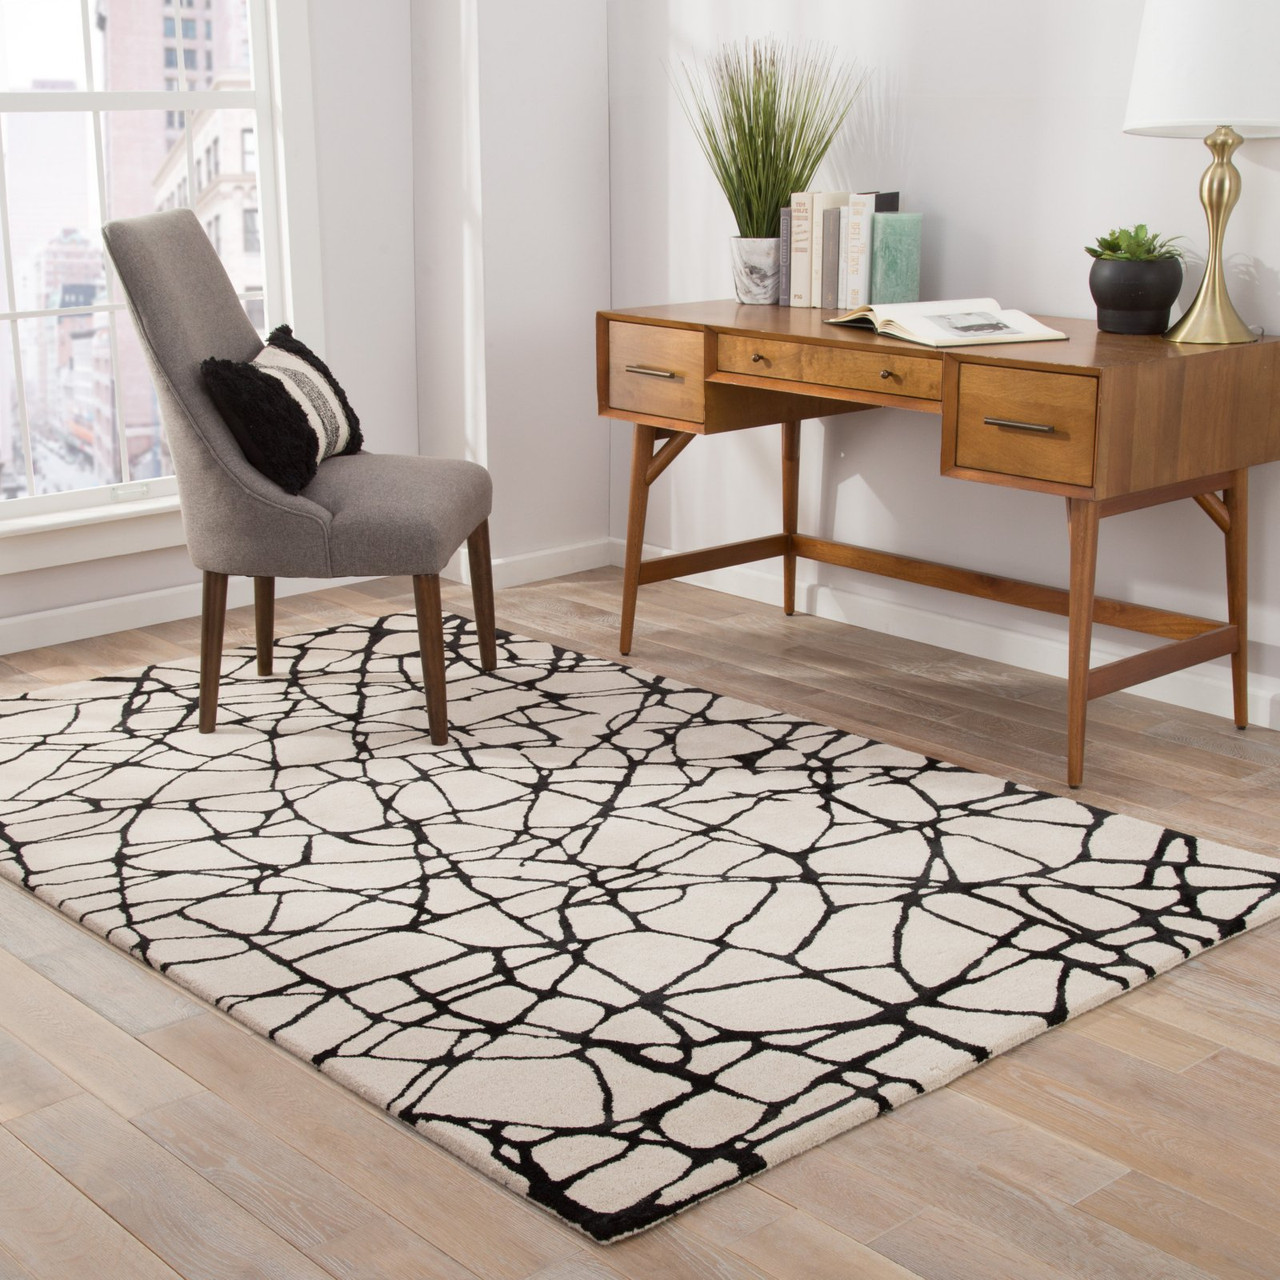 Chandler Etho Area Rug by Nikki Chu